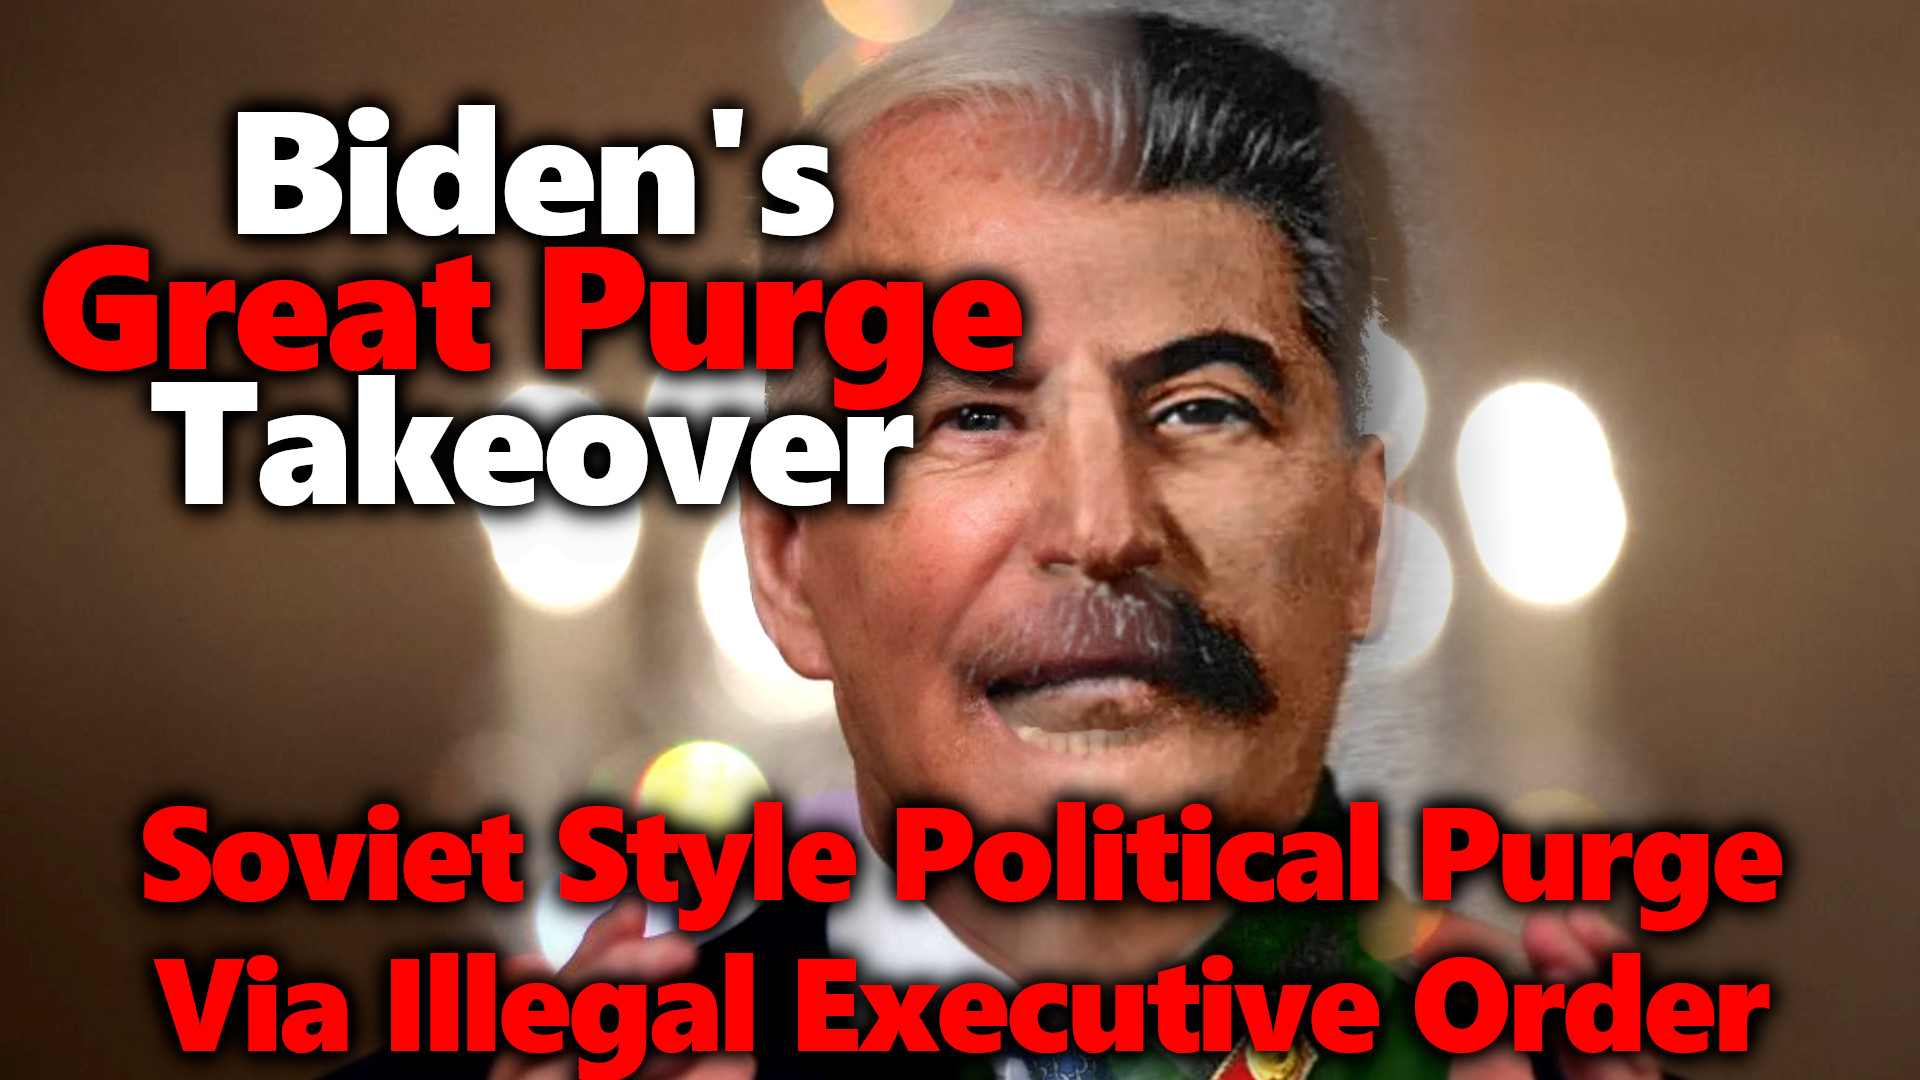 Biden's Great Purge 2.0 Executive Order: All Non-Believers To Be Fired From US Gov't & Their Contractors (Vaccines)